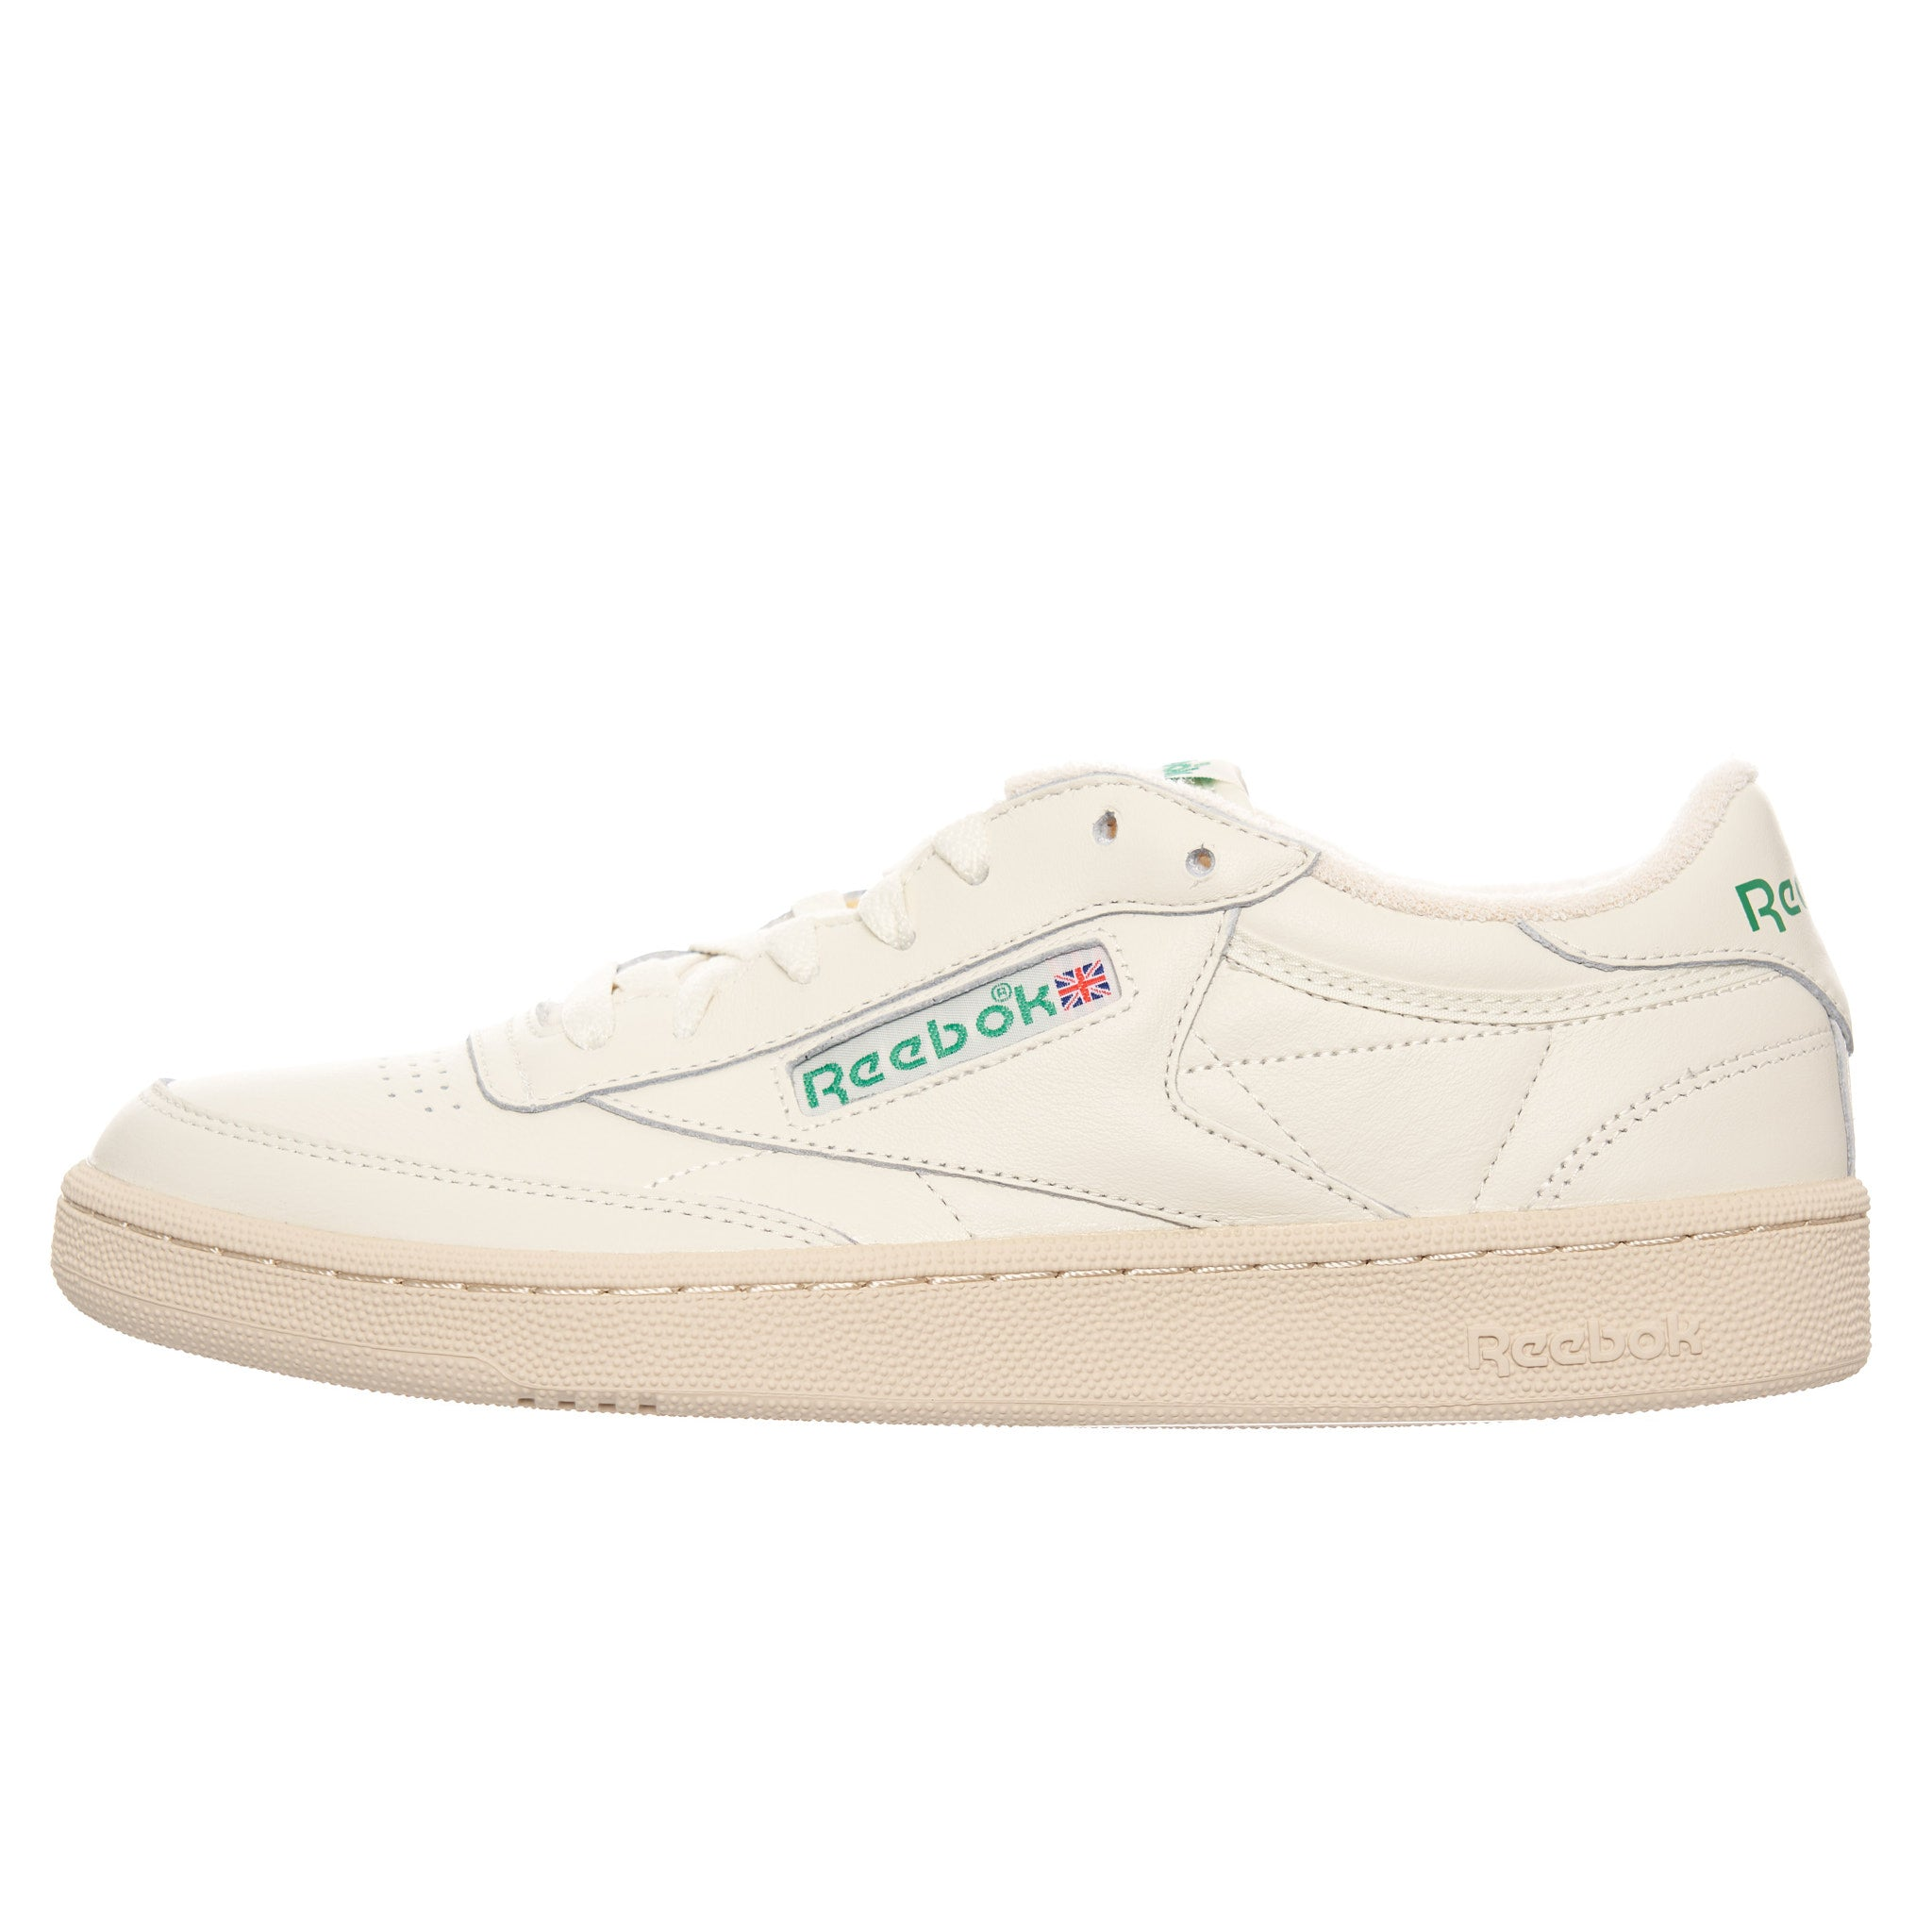 Reebok CLUB C 85 VINTAGE – Wish Atlanta